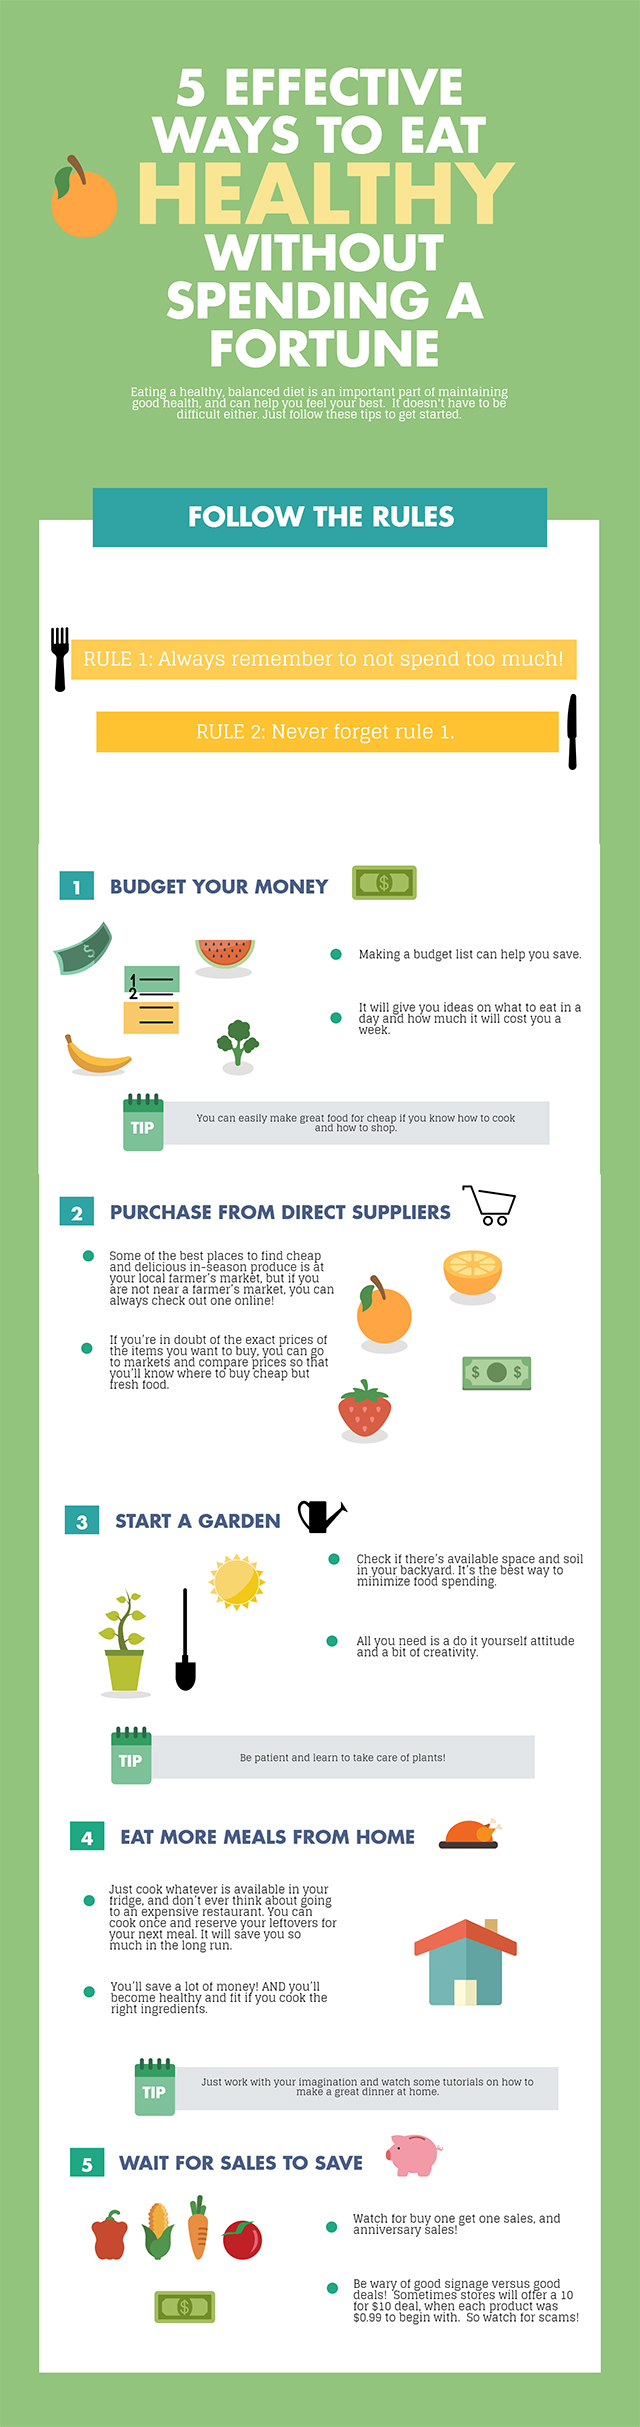 Eating Healthy on a Budget - Infographic 2